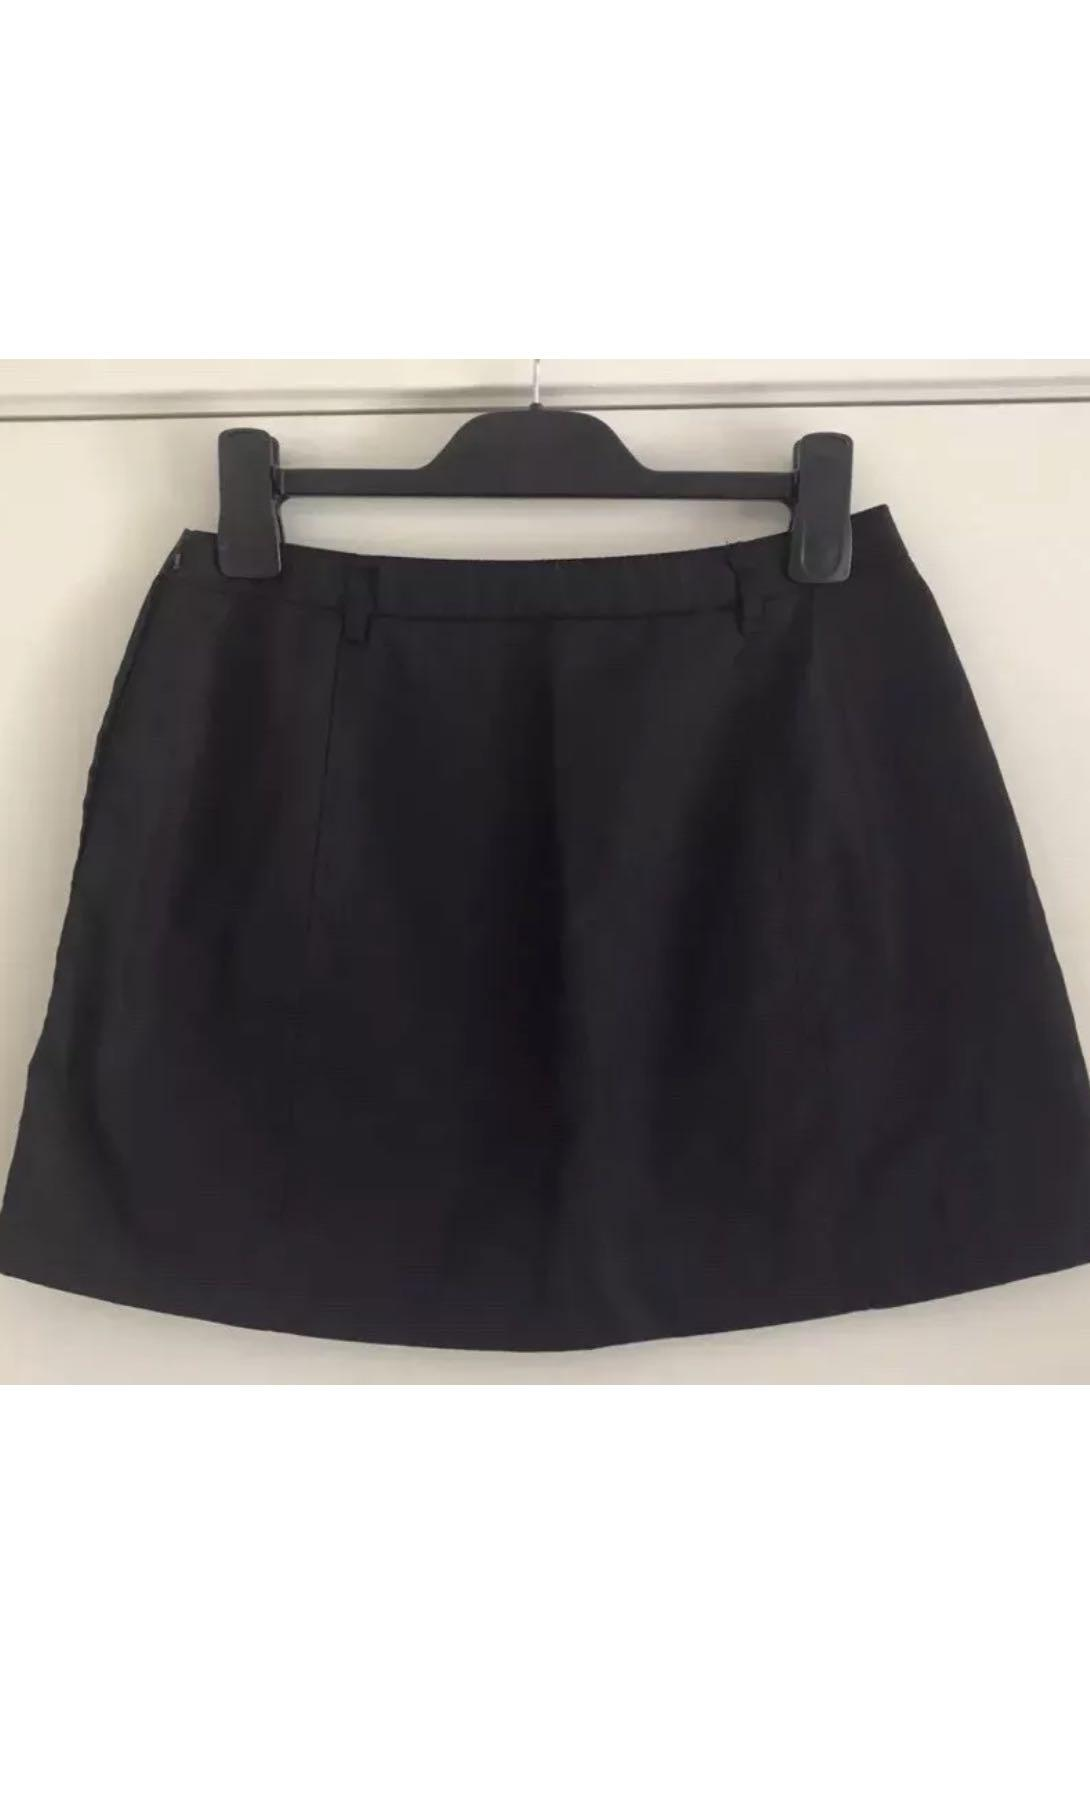 Ladies PRADA Black Mini Skirt. Fits Small. Made In Italy